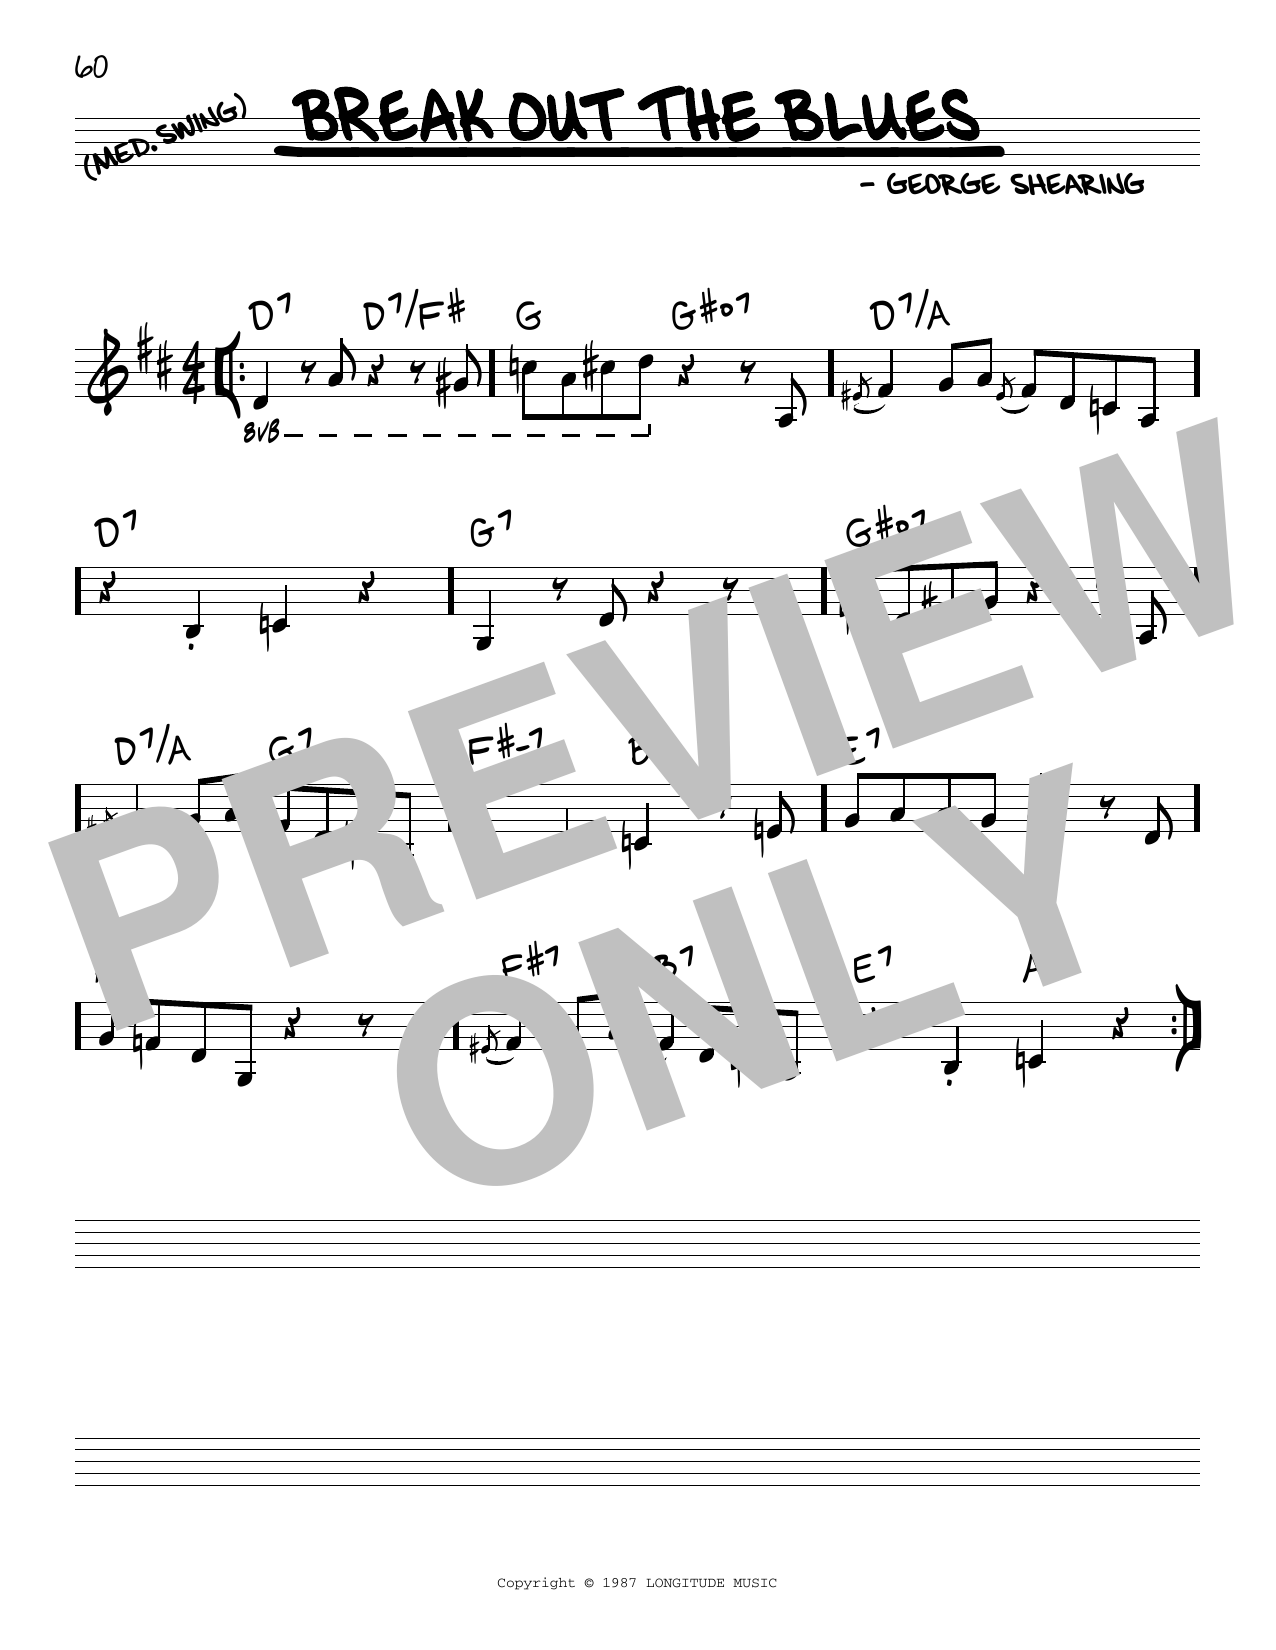 George Shearing Break Out The Blues sheet music notes and chords. Download Printable PDF.